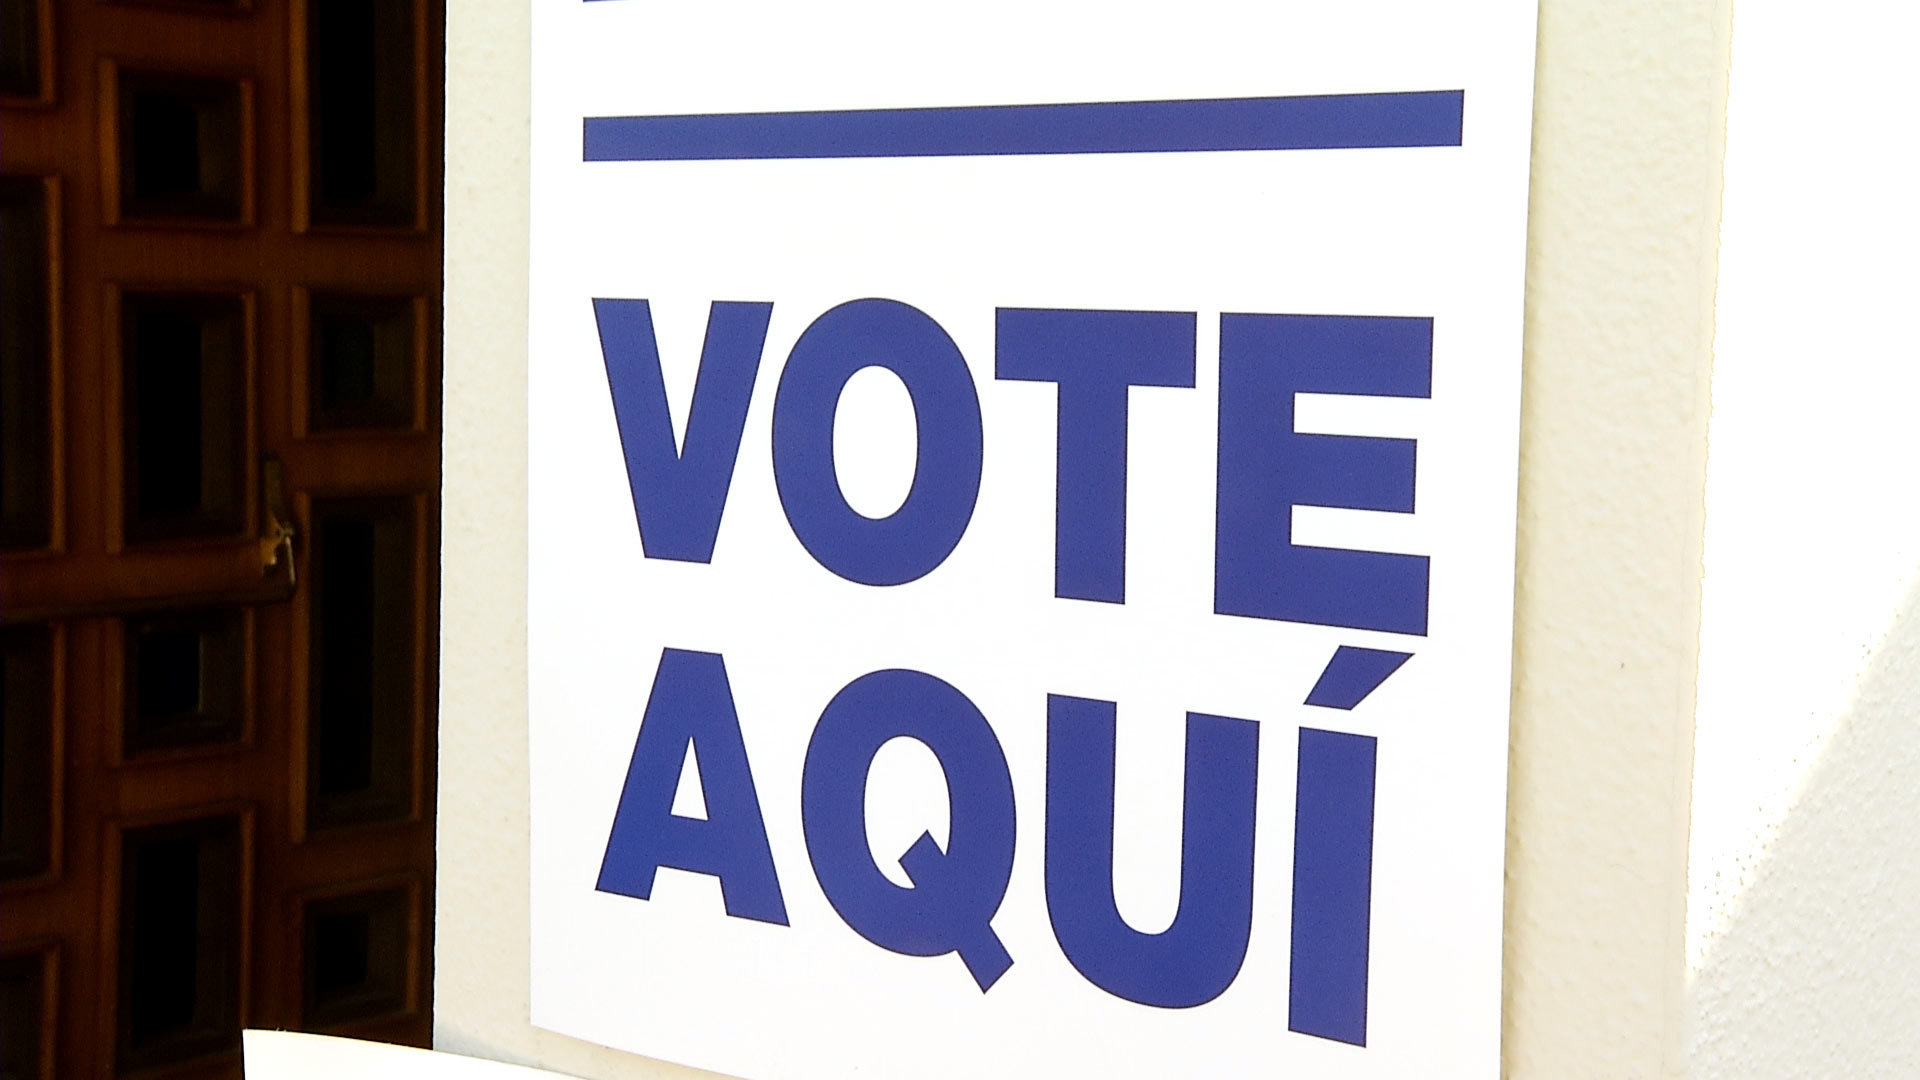 360 vote aqui sign